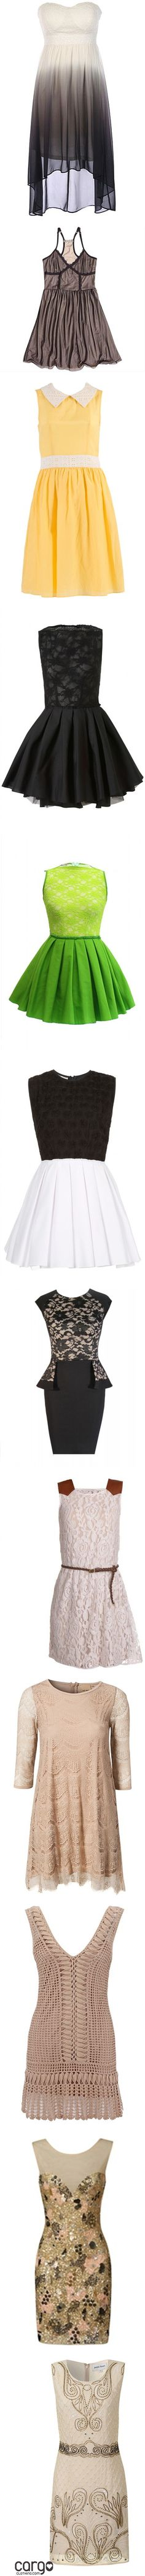 """Dresses XX"" by je-suis-un-lapin ❤ liked on Polyvore"